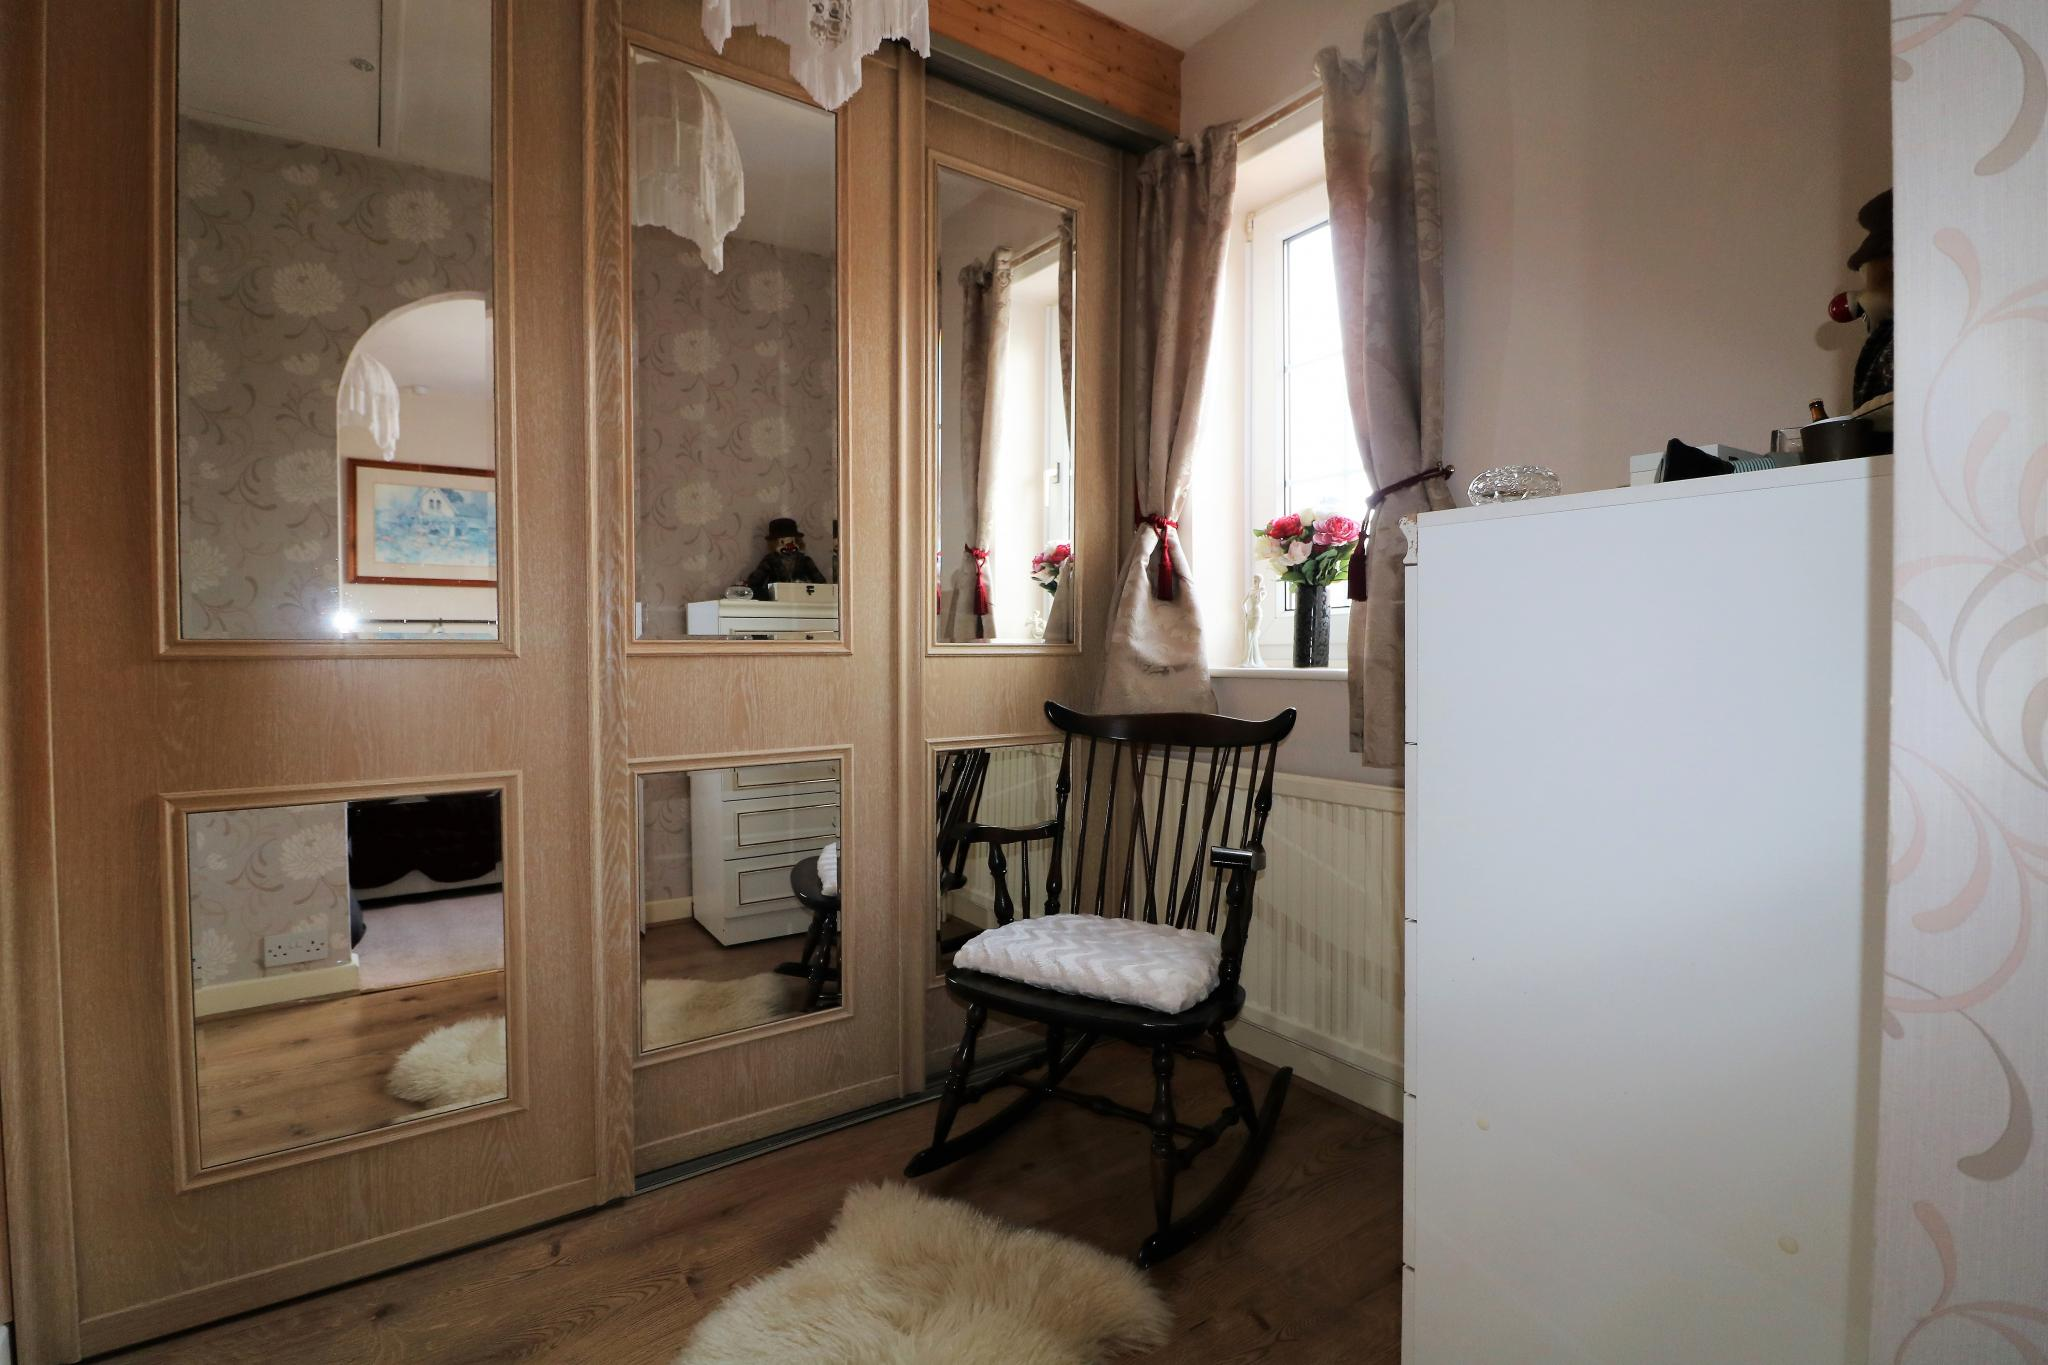 2 Bedroom Town House For Sale - Photograph 12